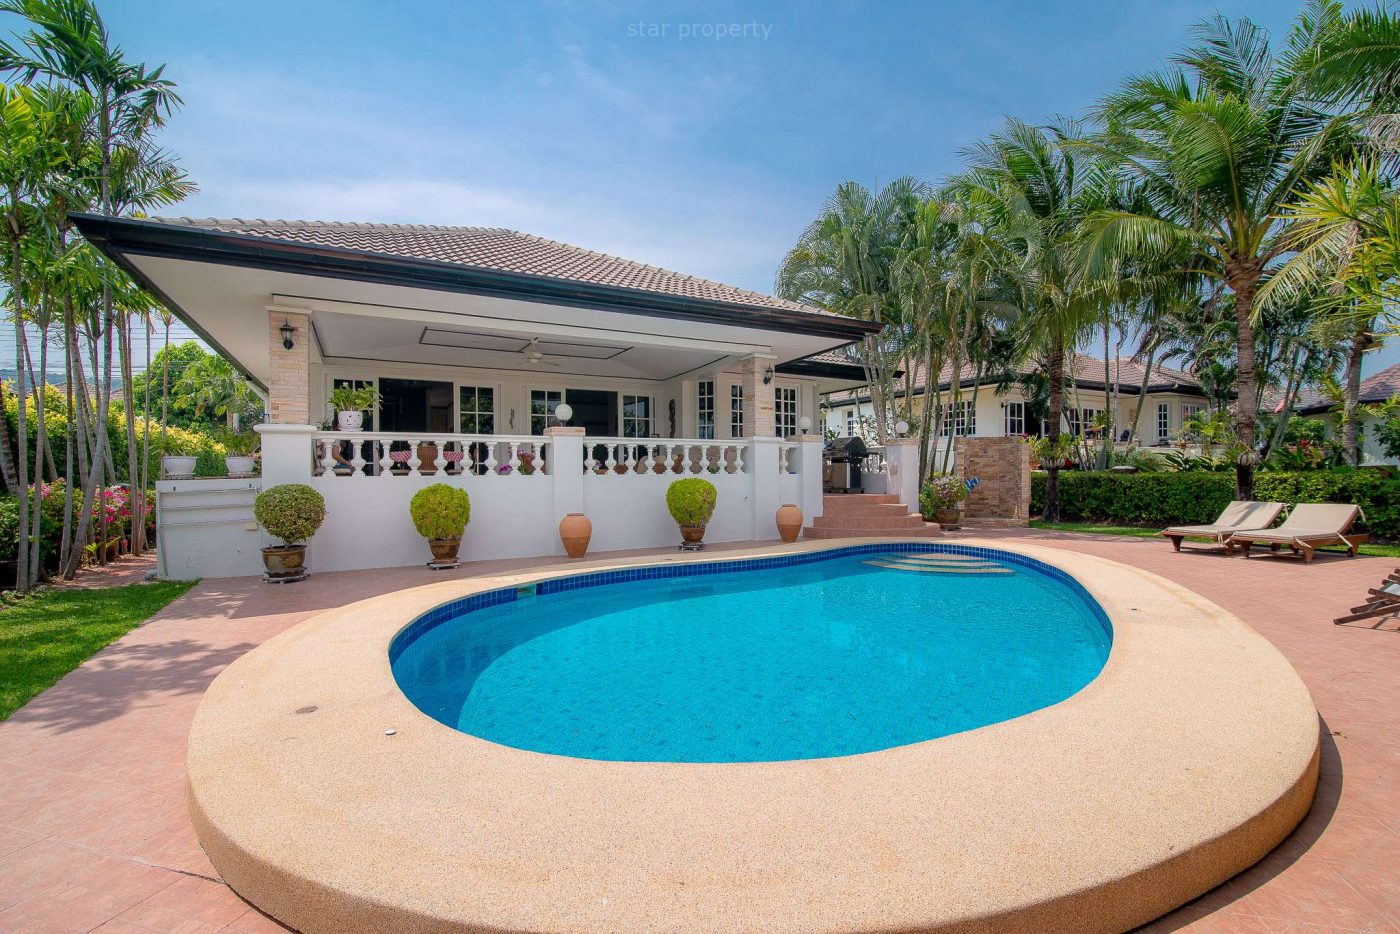 House for Sale in Laguna Soi 102 at Hua Hin District, Prachuap Khiri Khan, Thailand